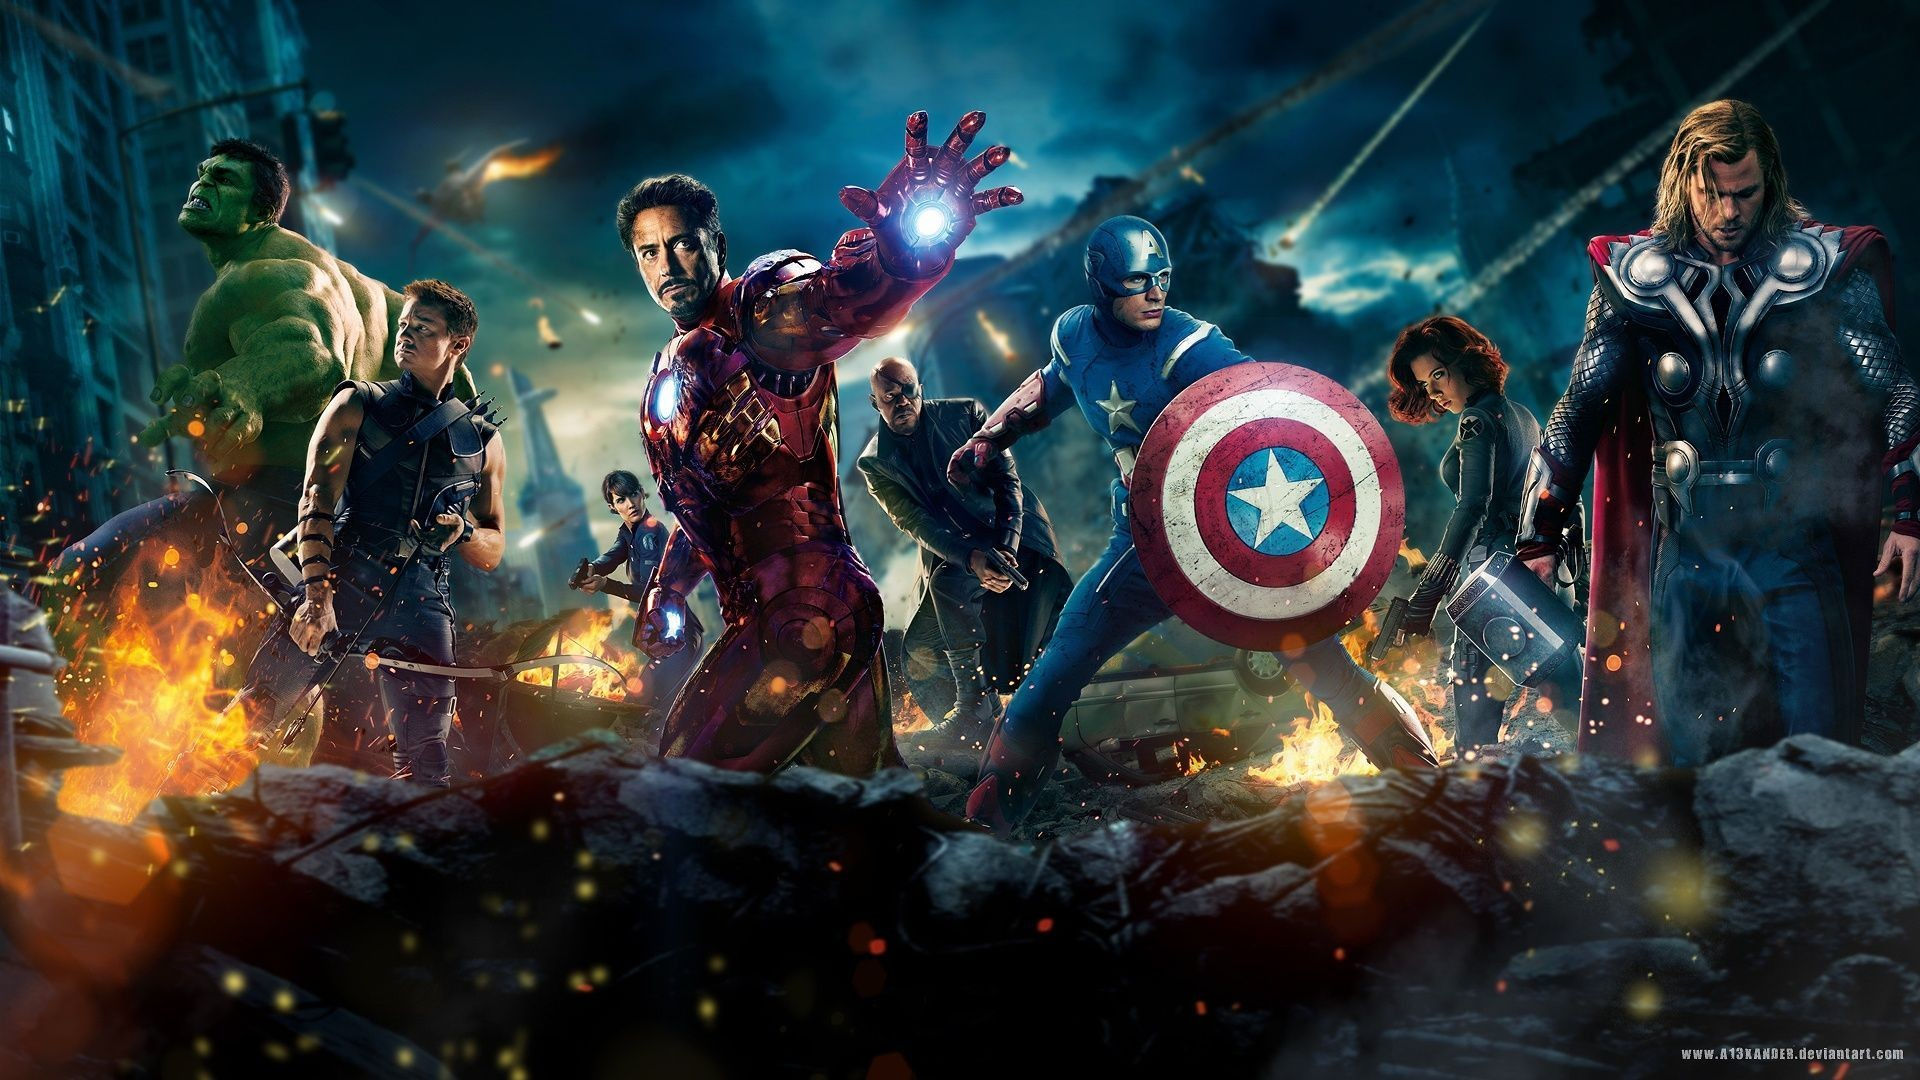 … avengers hd wallpapers on wallpaperget com …